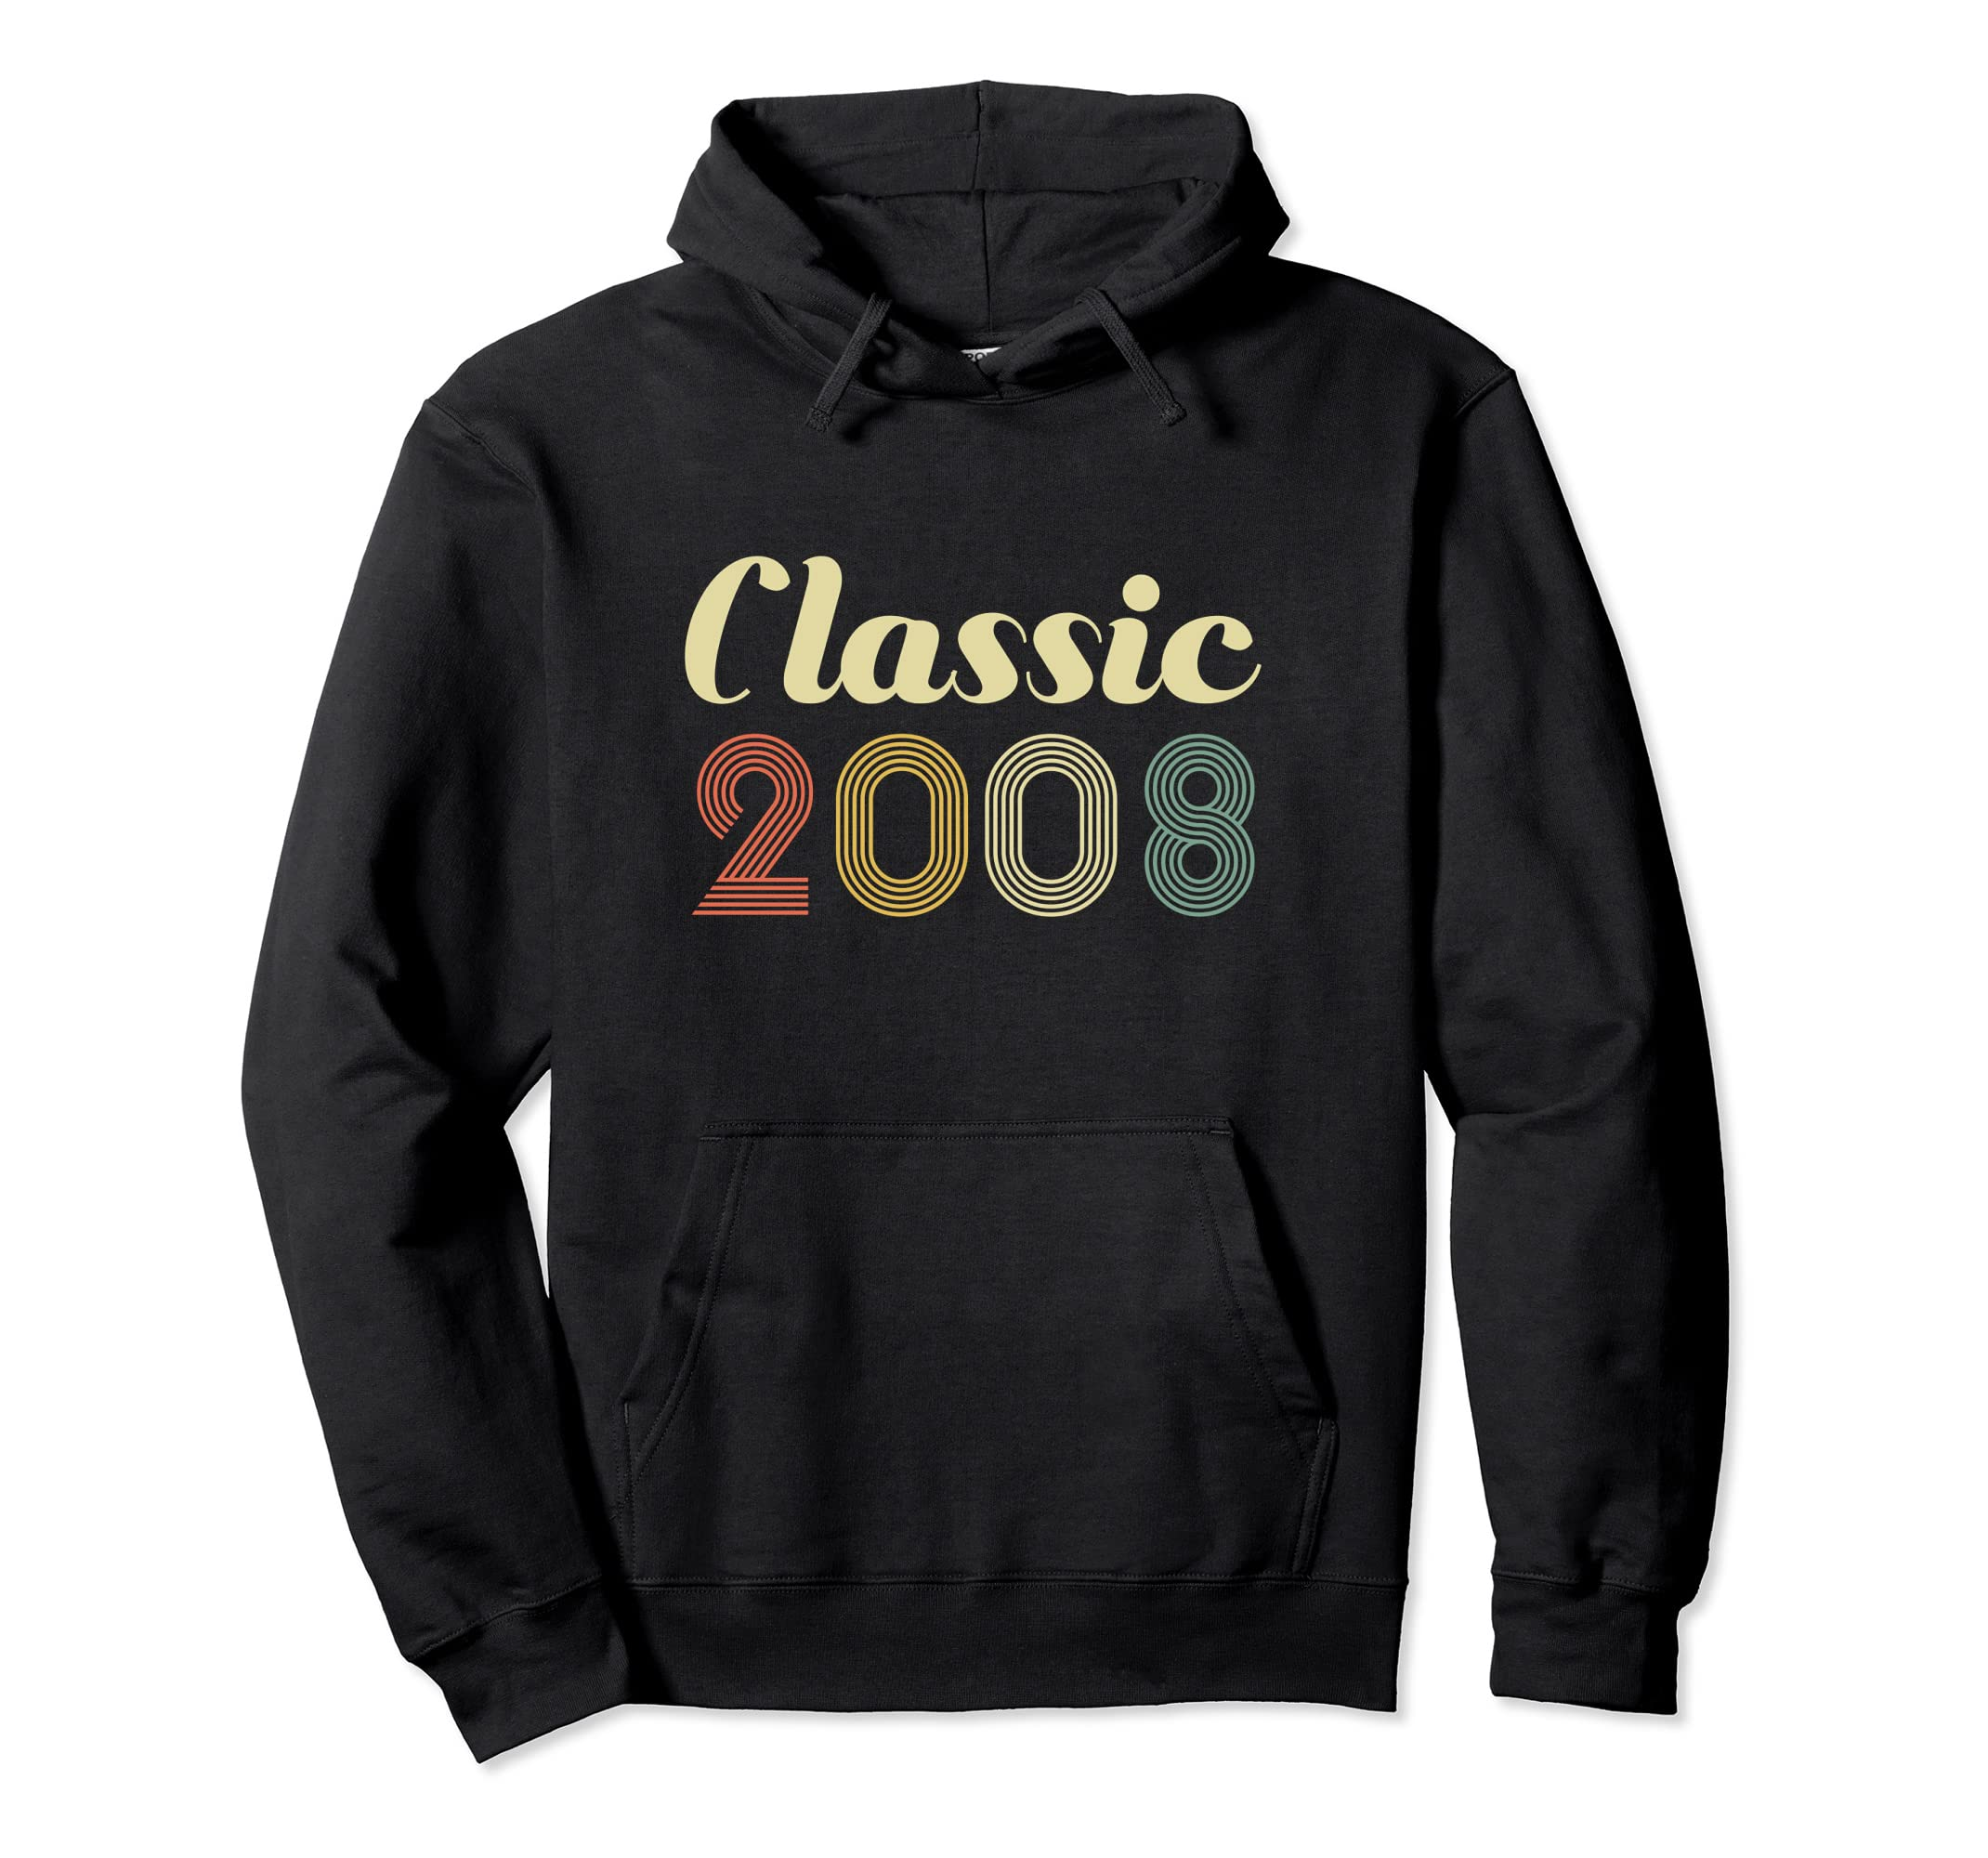 10th Birthday Gift Hoodie Classic Born In 2008 10 Year Old-ln